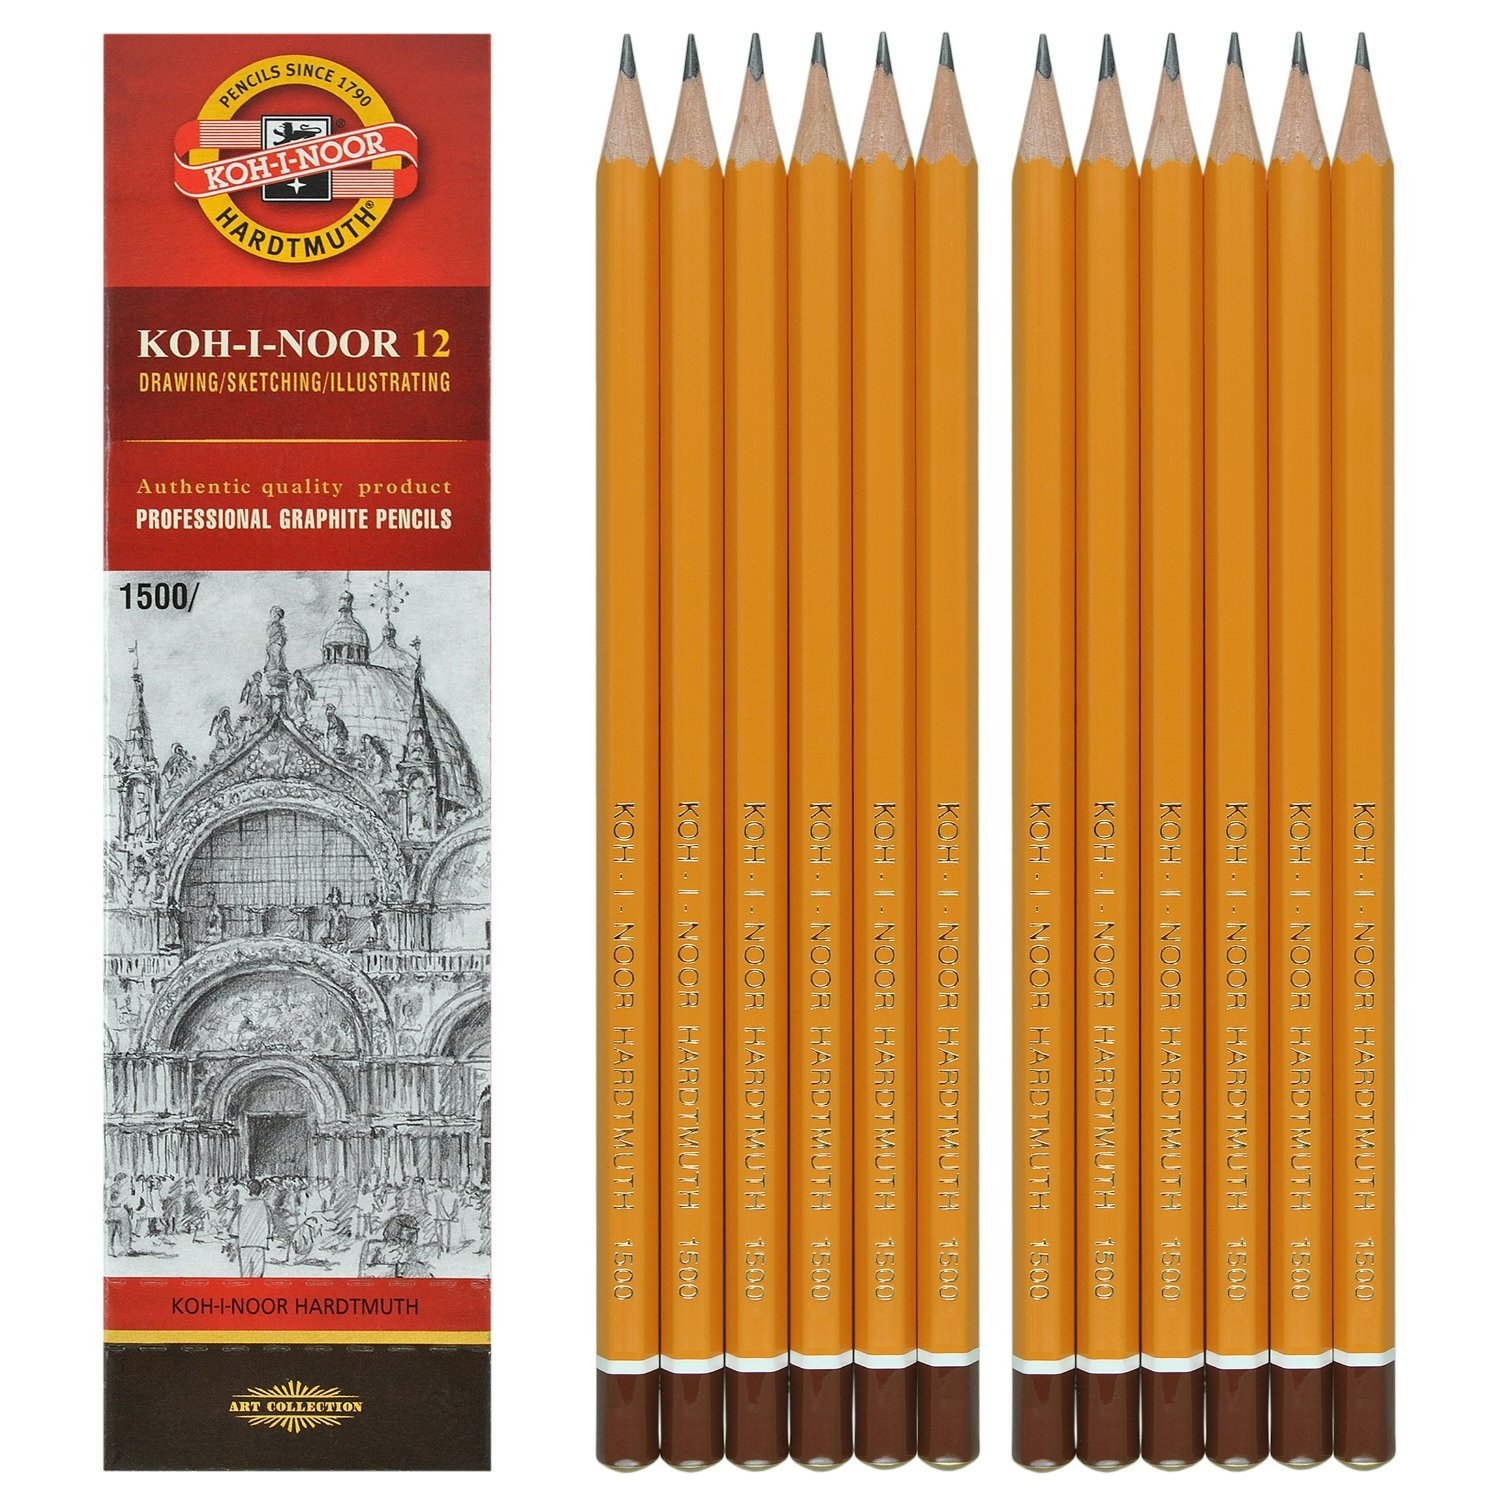 KOH-I-NOOR 10H Graphite Pencil (Pack of 12) 150010H01170